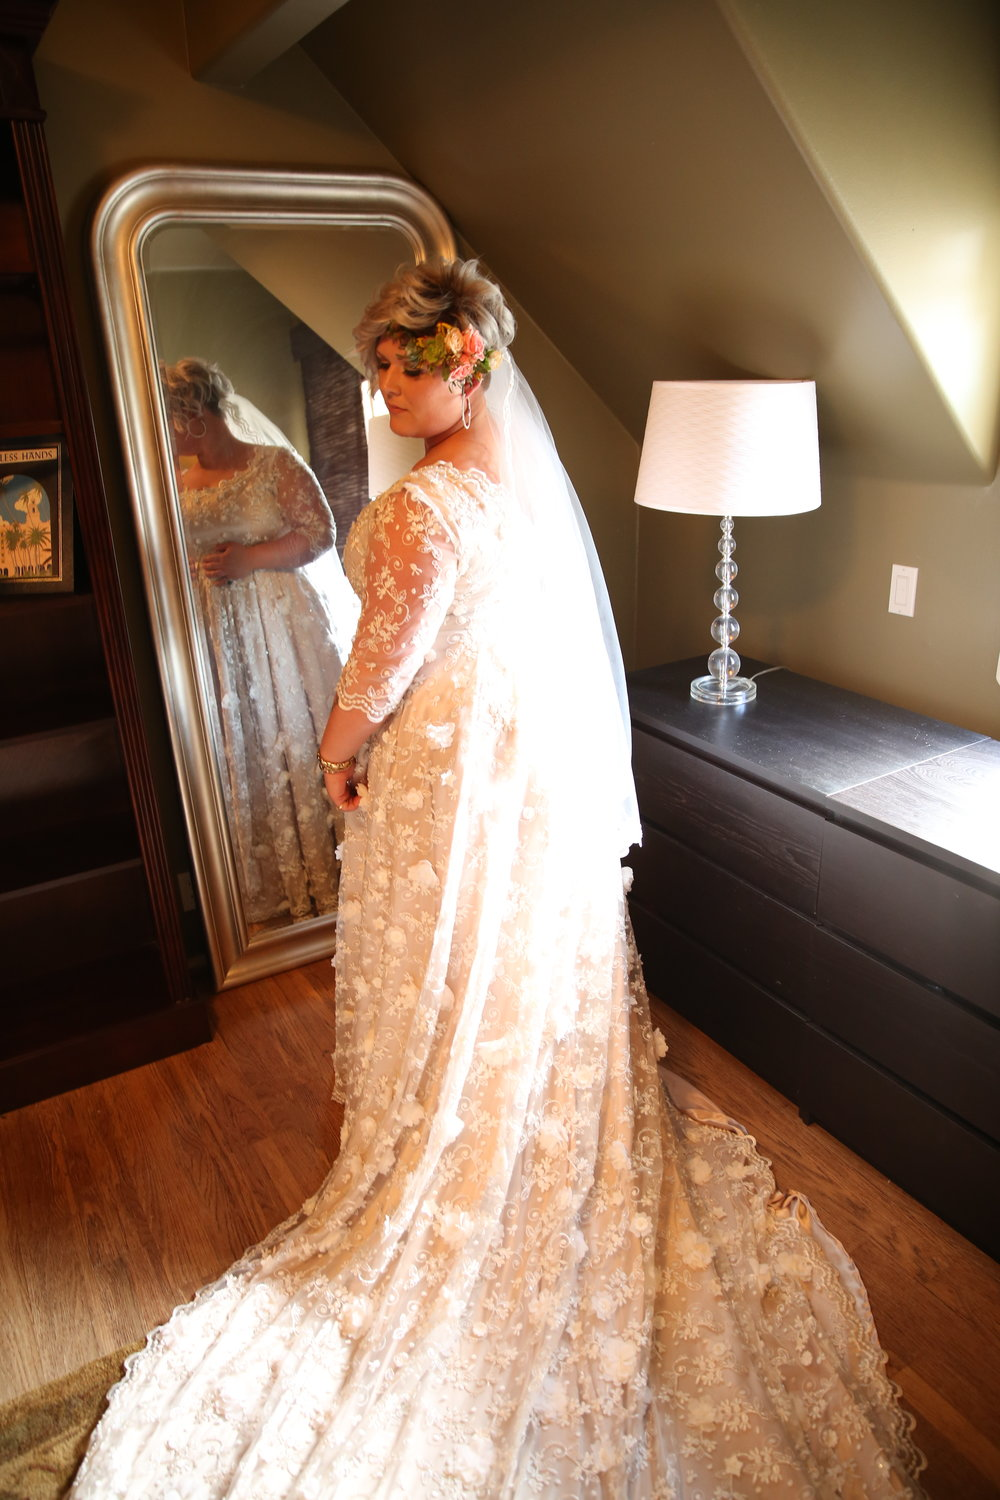 Bride in a wedding dress with a train, looking over her shoulder standing in front of a mirror. She is ready to walk down the aisle.